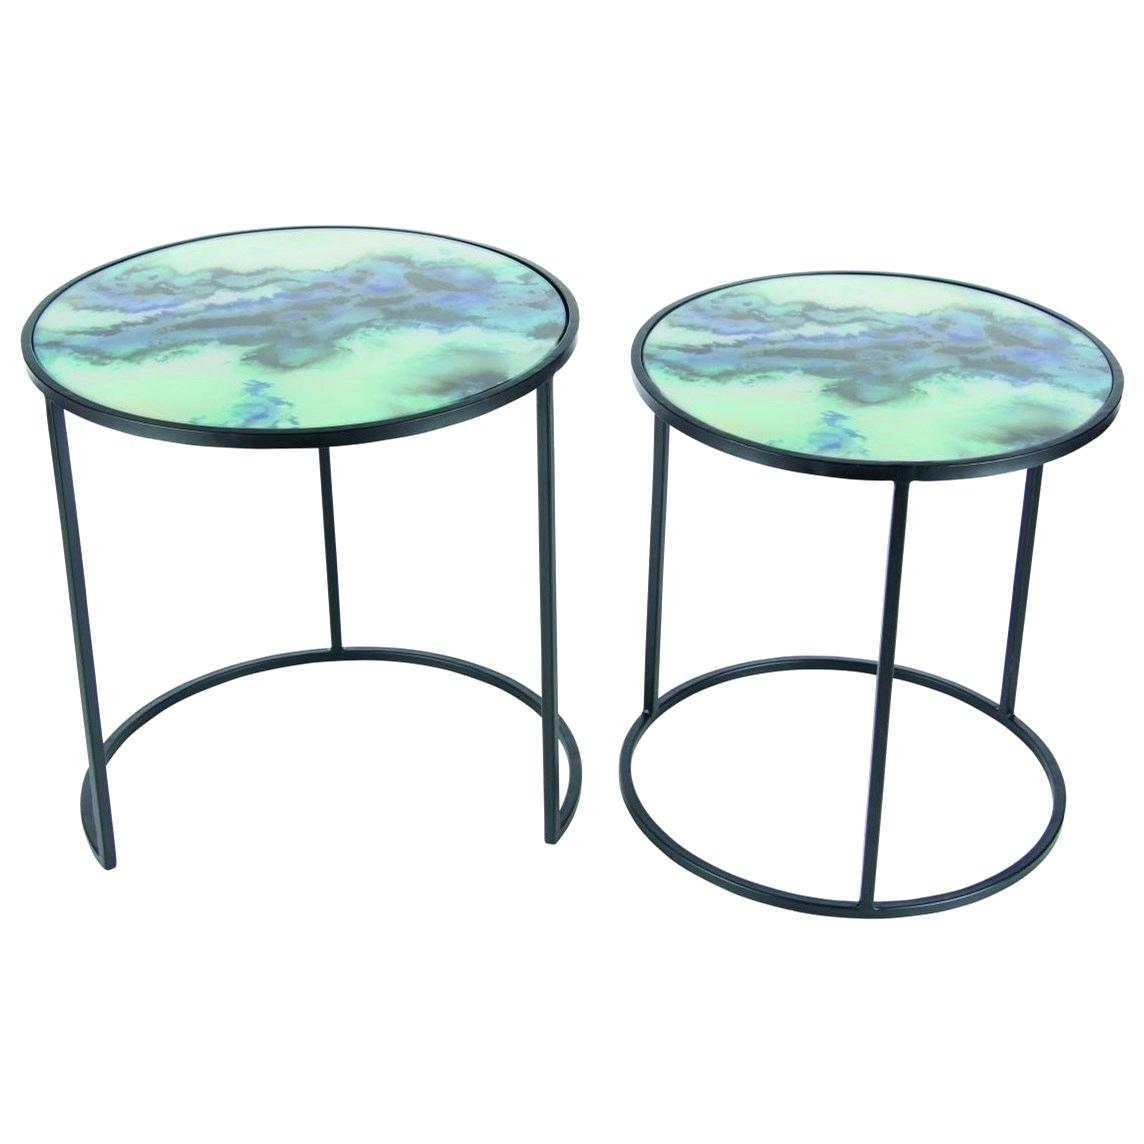 turquoise accent tables info enterprises inc furniture metal glass set home security ideas diy quarry table dewalt bunnings outdoor lounge settings garden small black corner front